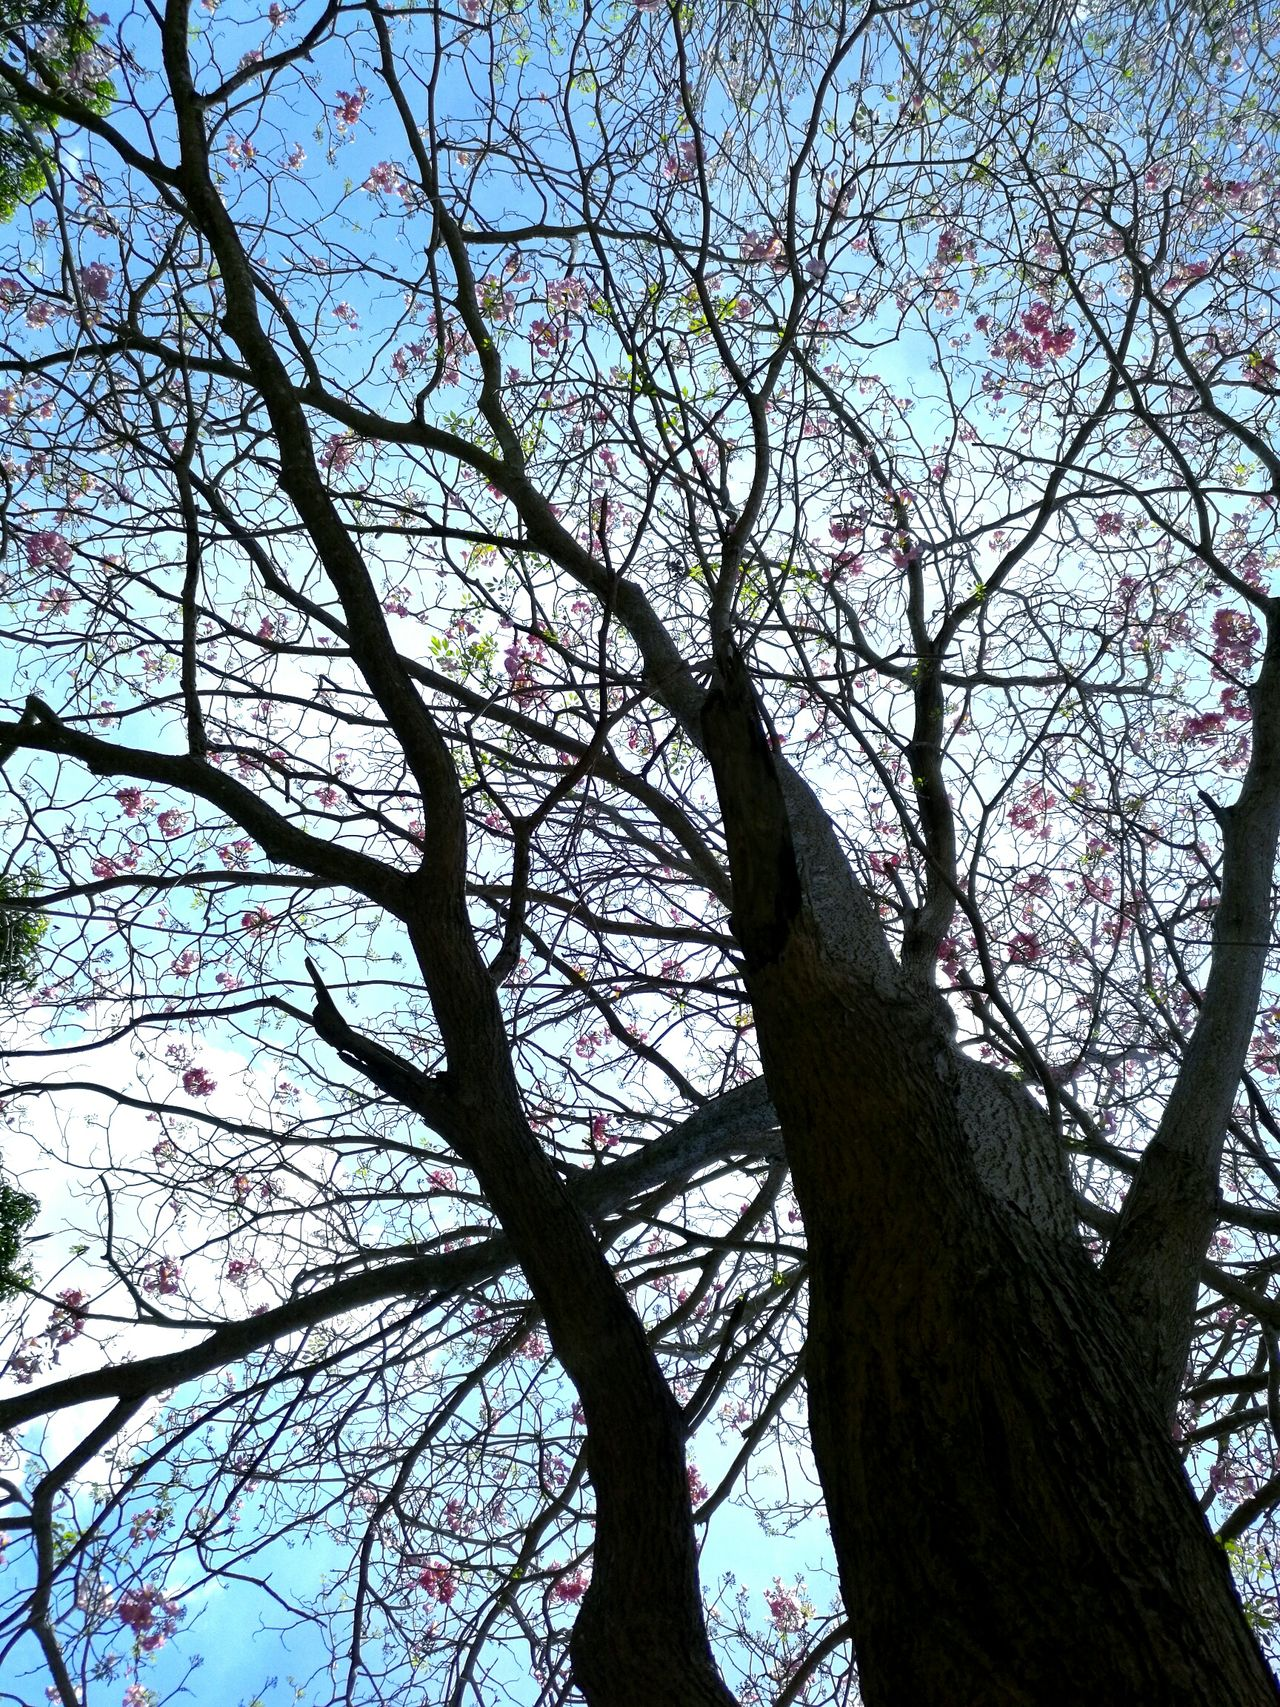 Tree Low Angle View Human Hand Sky Branch Nature Day Outdoors Tabebuia Rosea One Person Real People Close-up Pink Trumpet Tree Pink Trumpet Pink Tree Blossom Spring Flowers Branches Of Trees Branches And Blossom Pink Color Beauty In Nature People EyeEmNewHere The Great Outdoors - 2017 EyeEm Awards